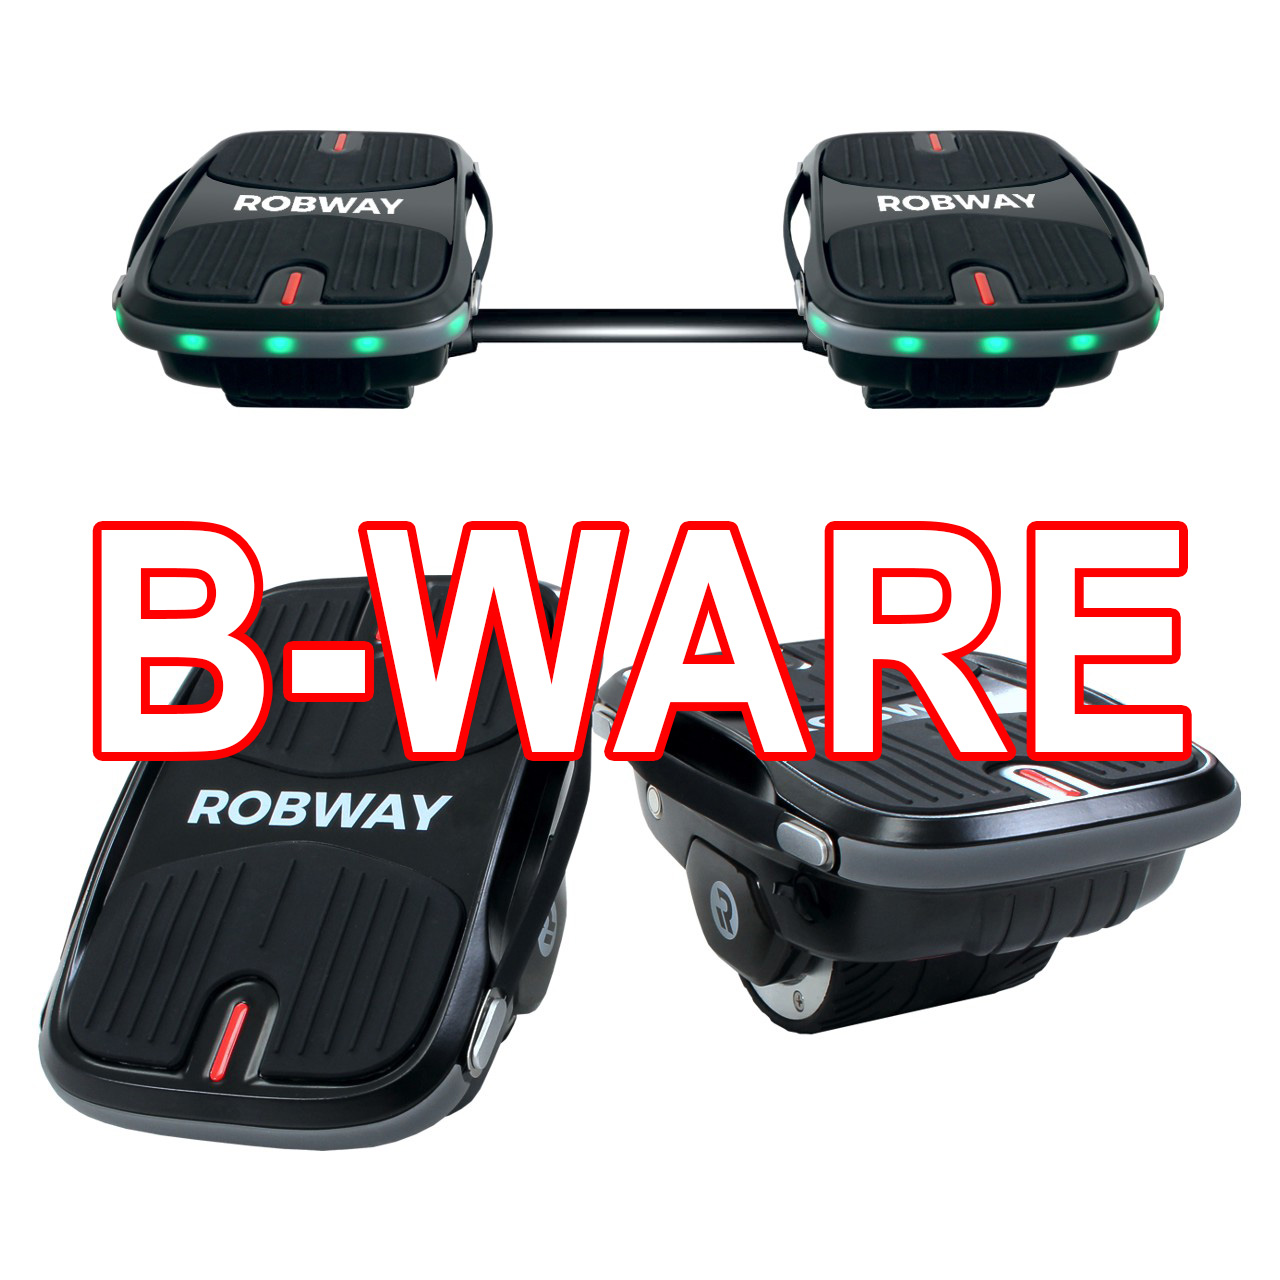 b ware e balance robway s1 2in1 hovershoes hoverboard 3. Black Bedroom Furniture Sets. Home Design Ideas